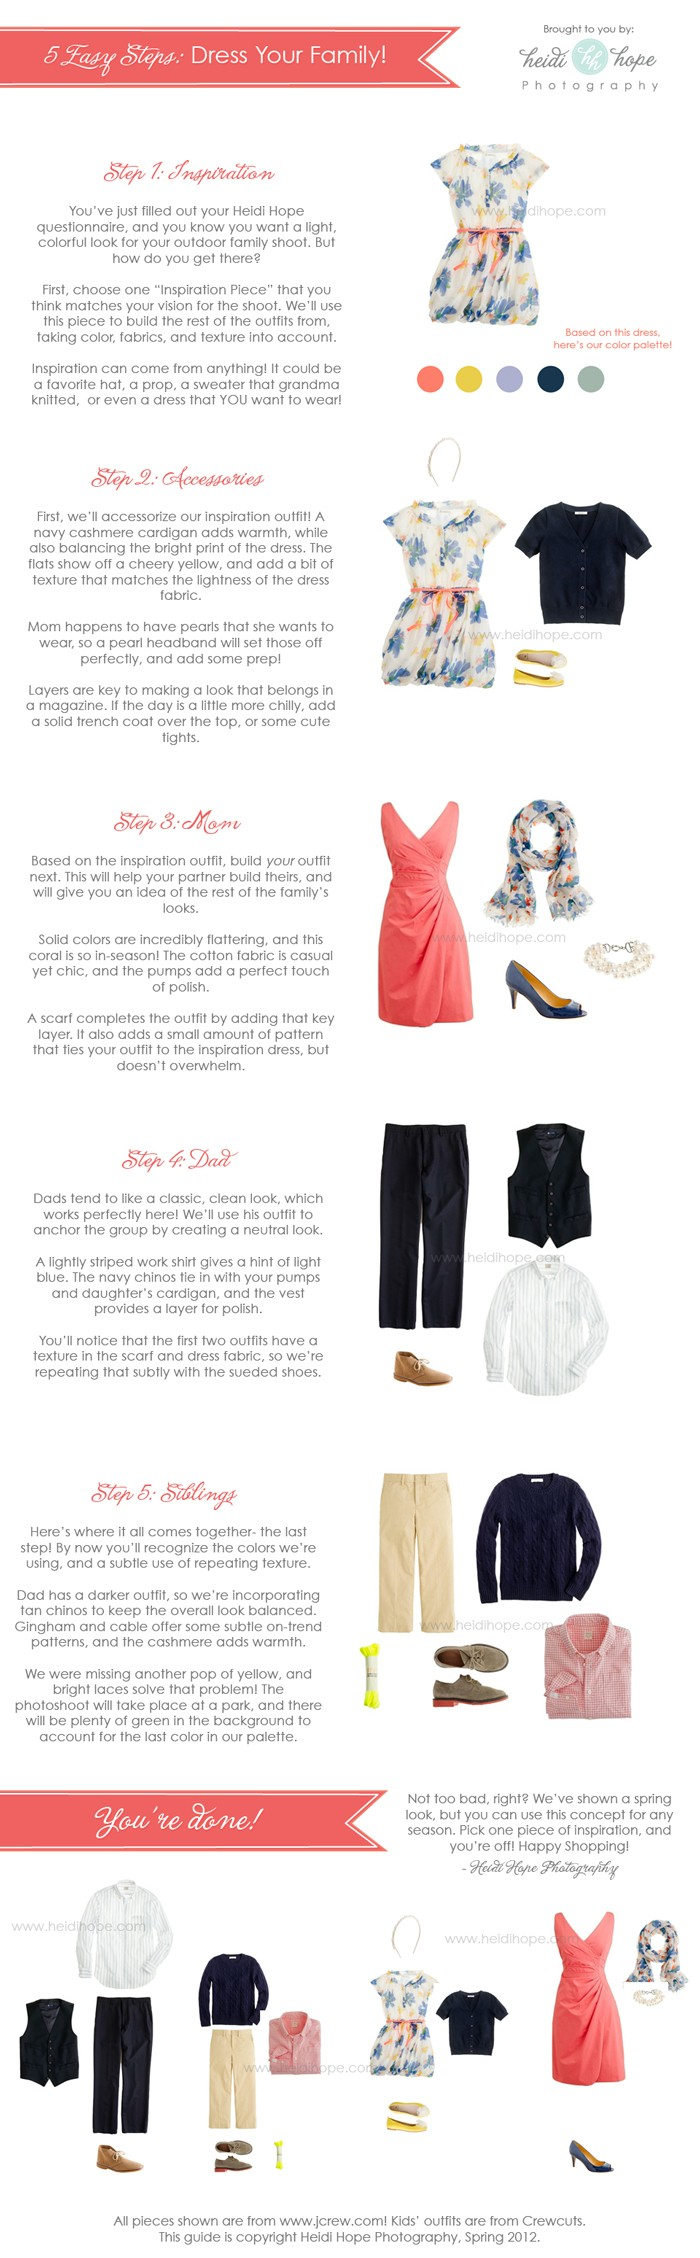 Wardrobe Wednesday: How to dress your family for portraits!